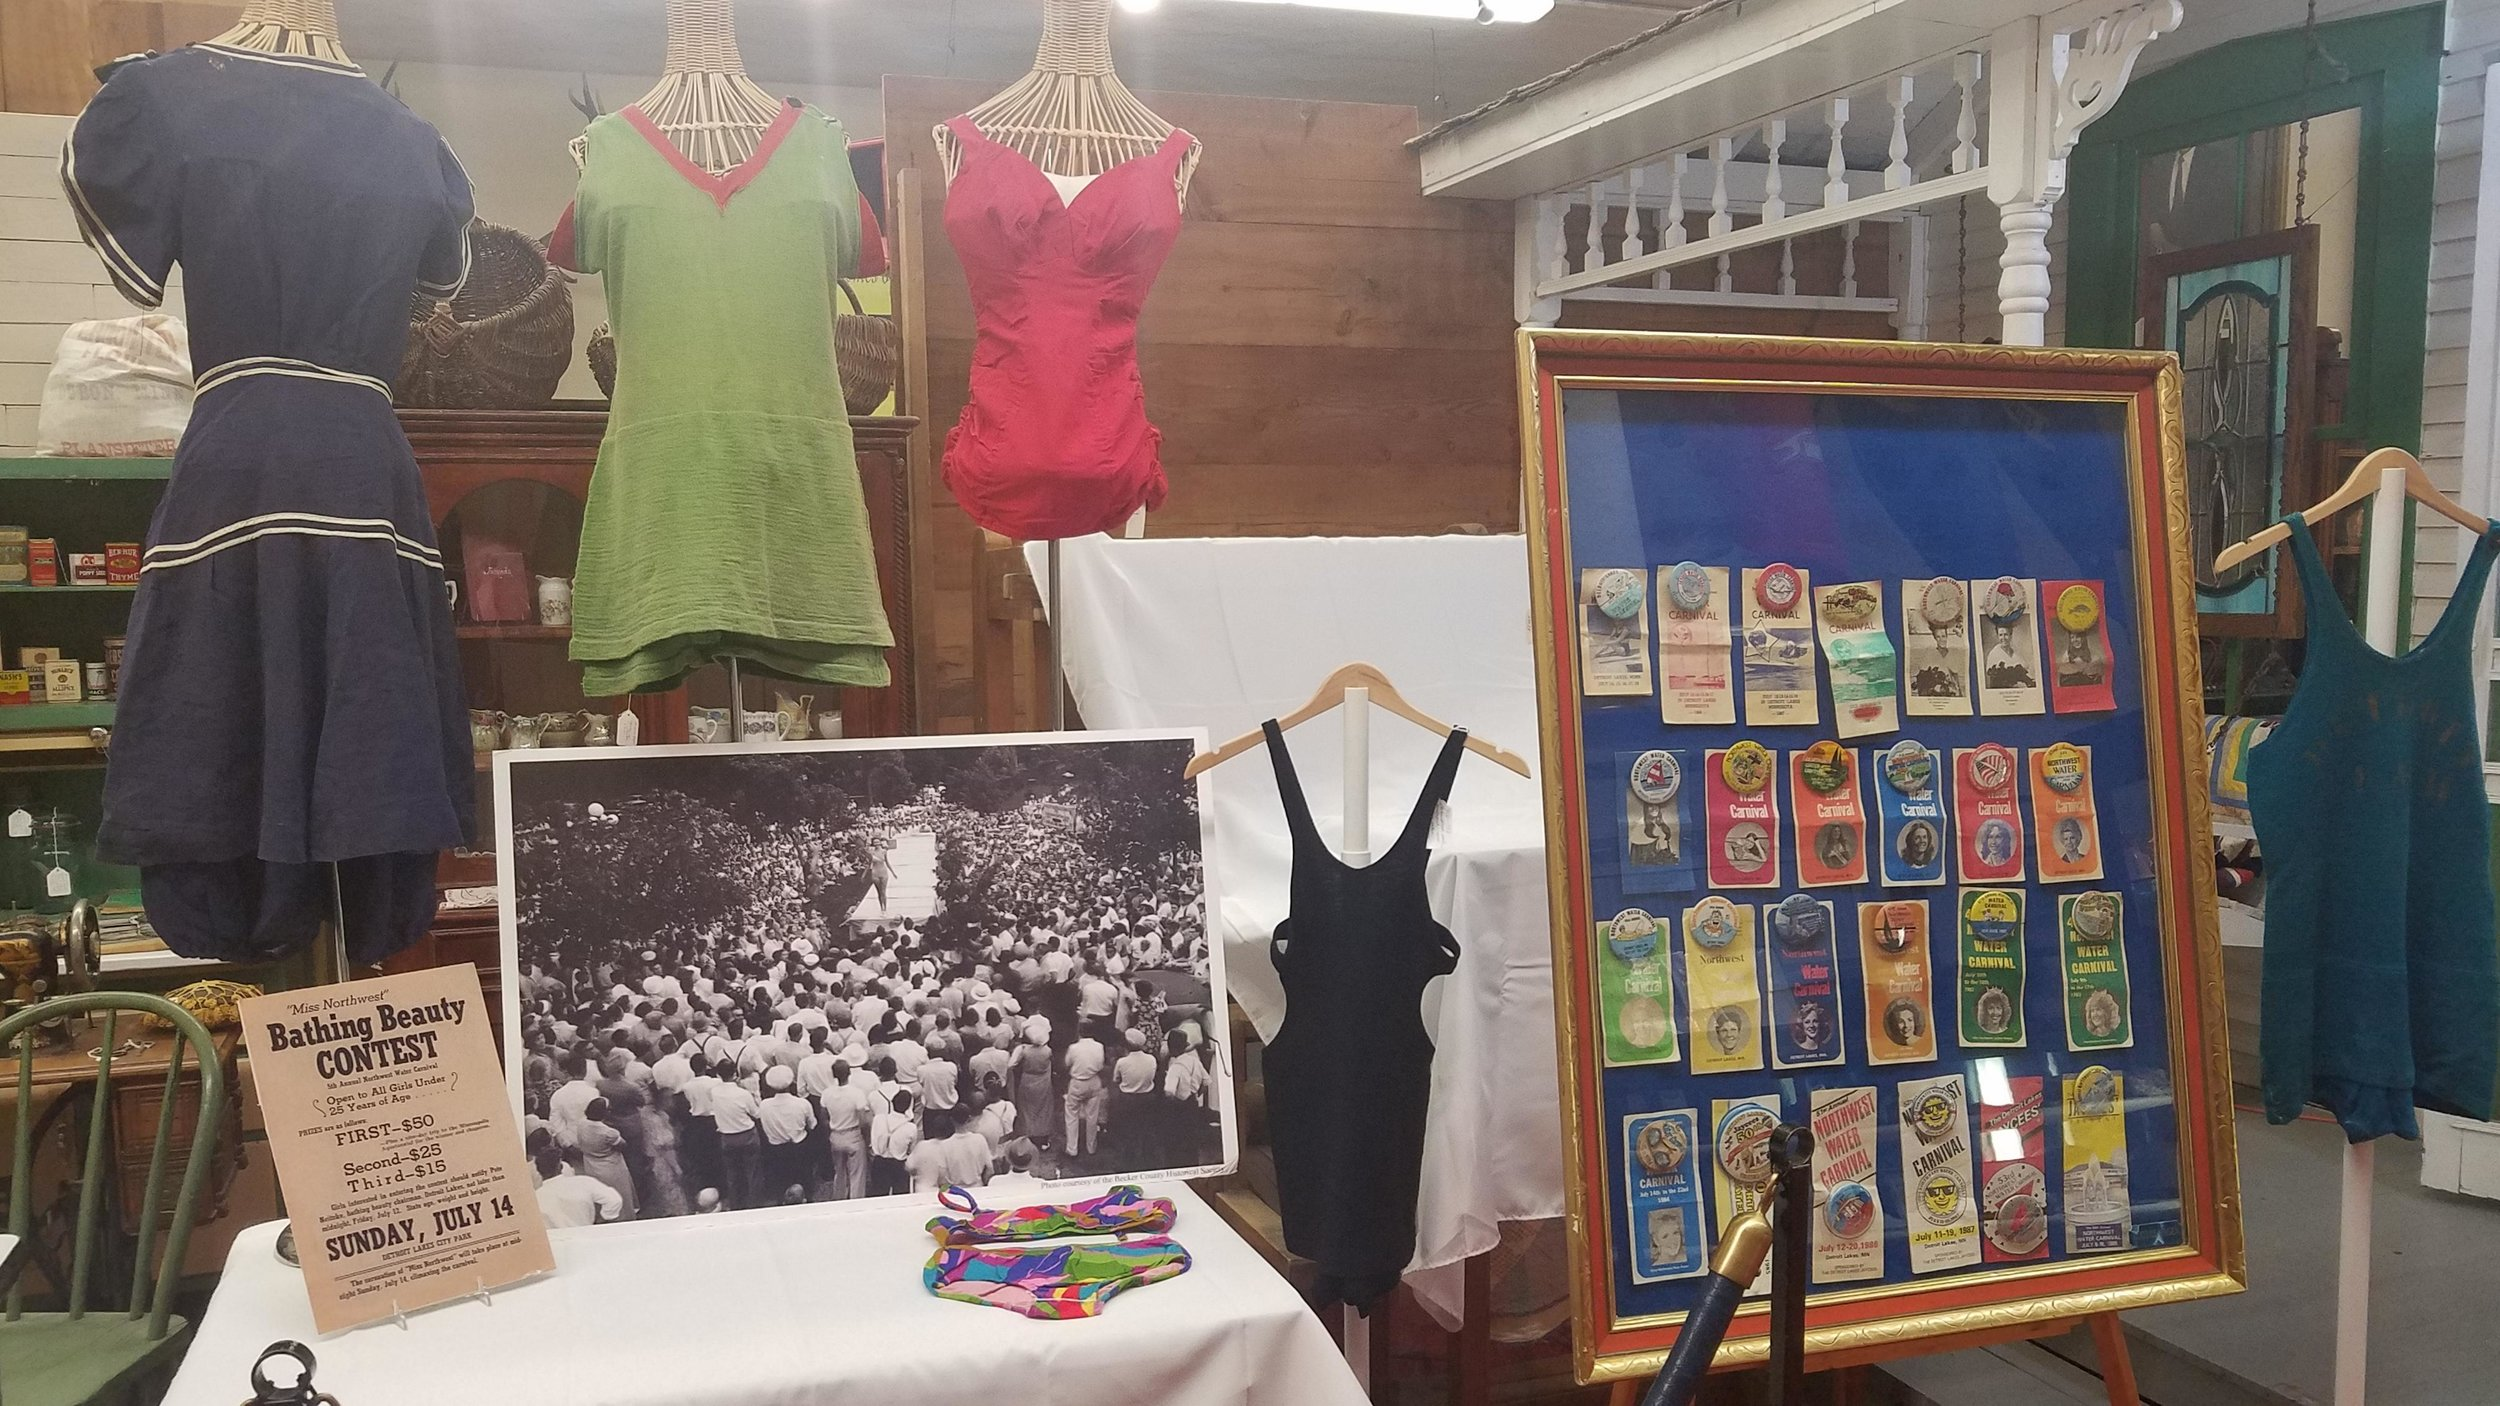 The Becker County Museum's Northwest Water Carnival history exhibit includes a wide range of memorabilia from the carnival's 84-year history, such as this collection of swimsuits from the early 1900s all the way up to a modern bikini. (Vicki Gerdes / Tribune)